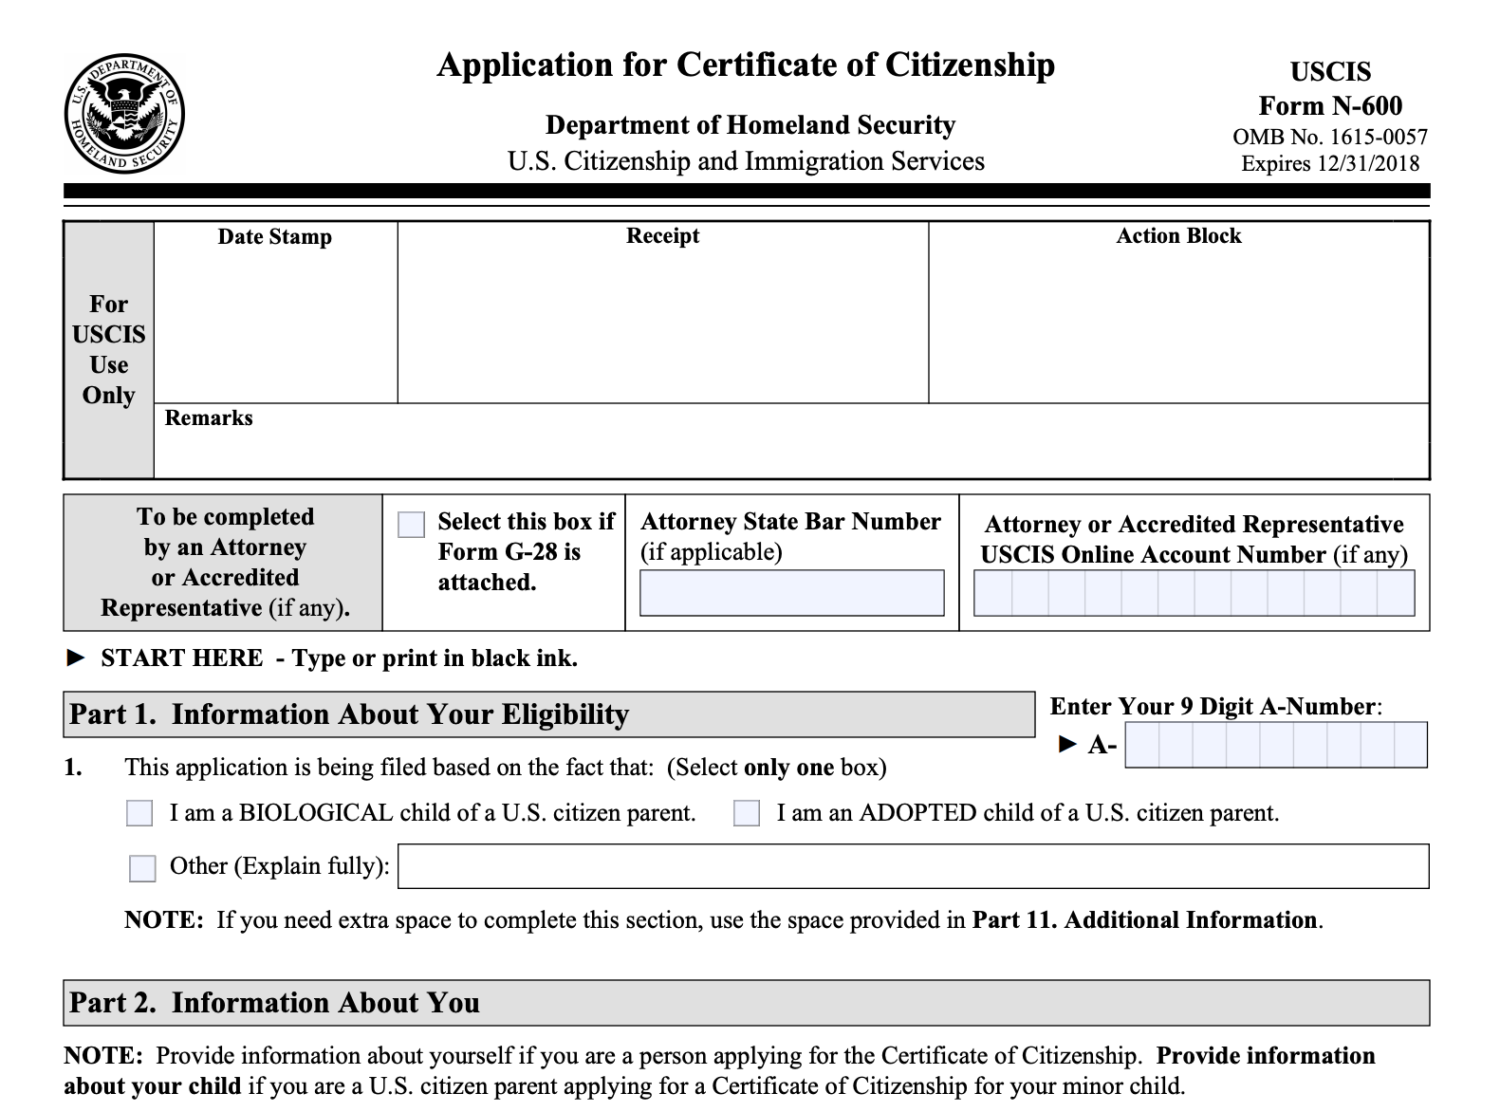 Form N-600, Application for Certificate of Citizenship